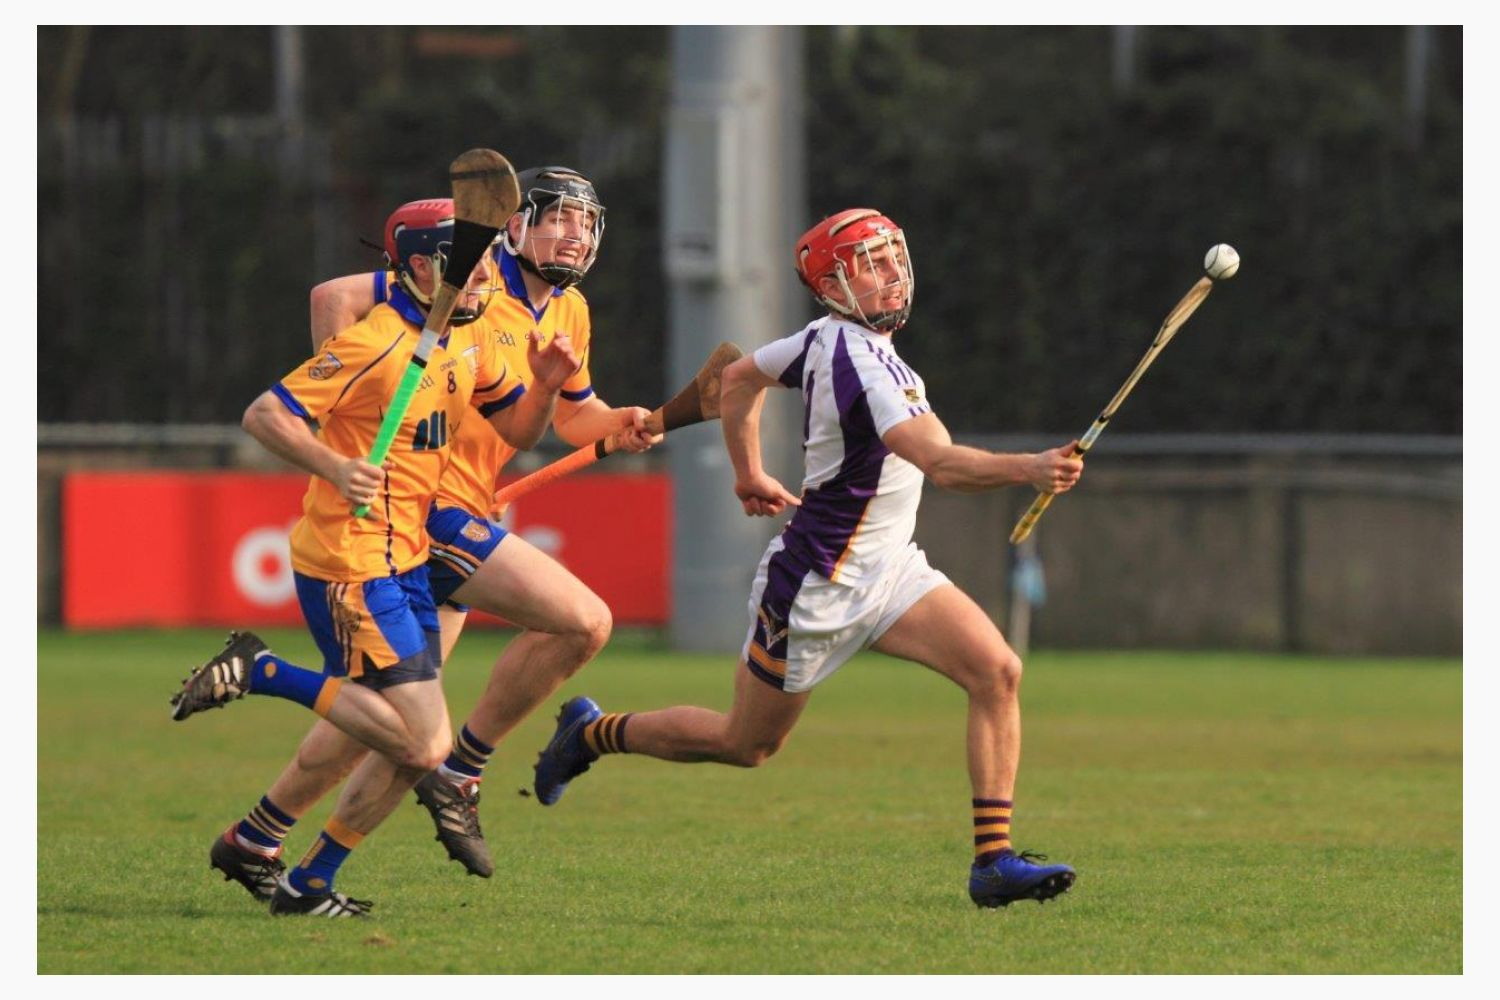 Late goal secures draw for Senrior A Hurling team in first championship game